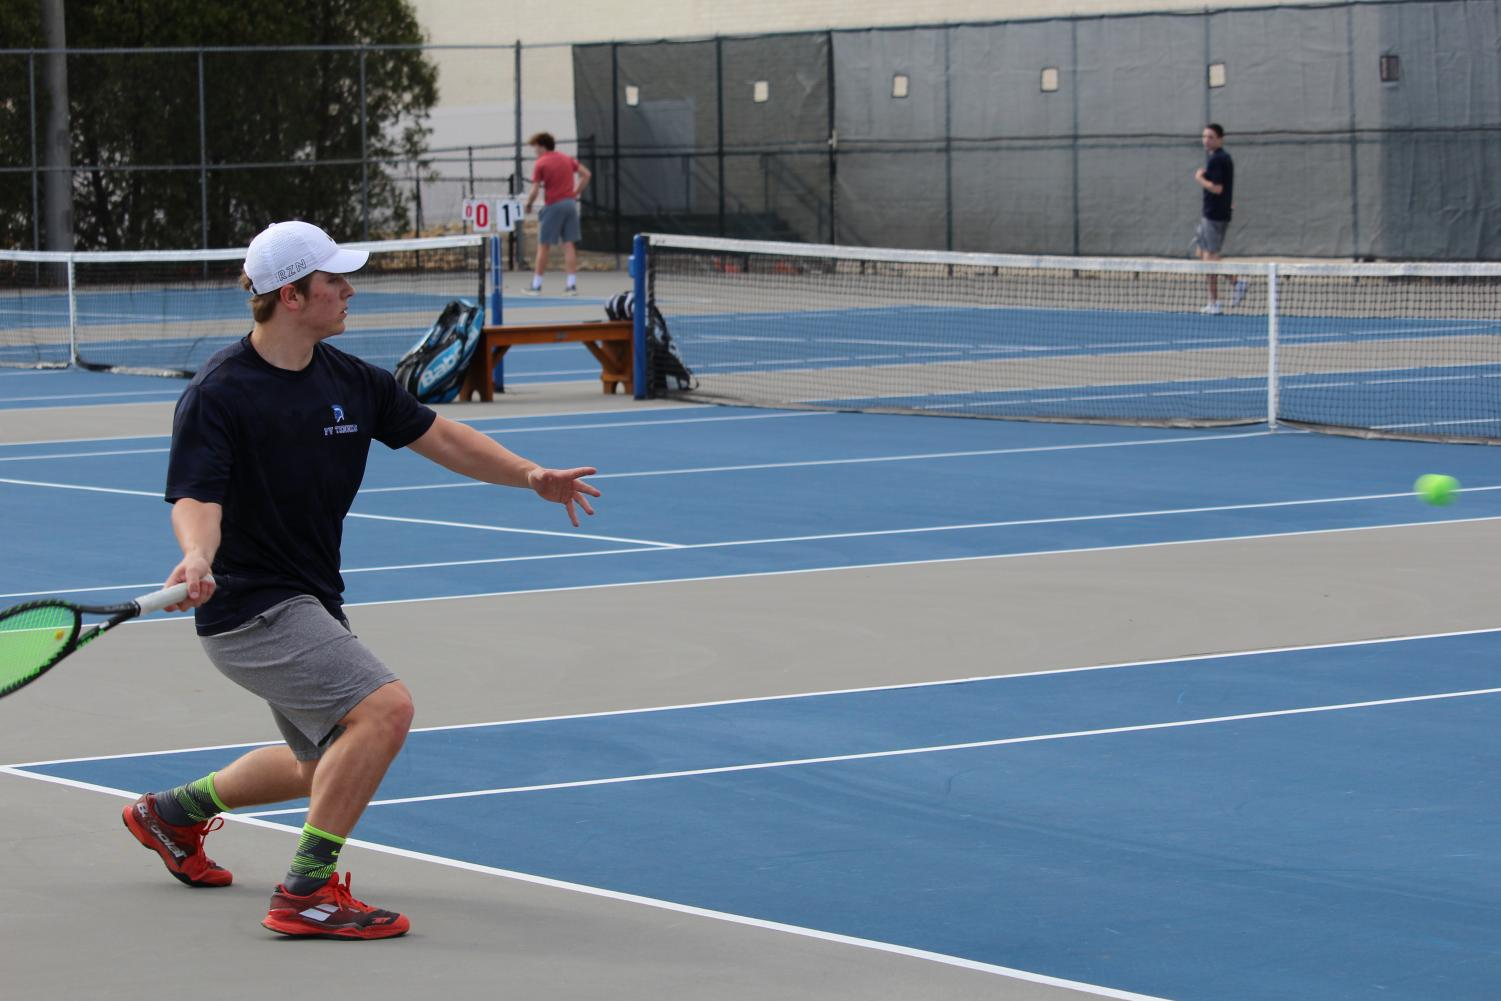 PV graduate Justin Sehlin plays in a tennis meet at Pleasant Valley High School.